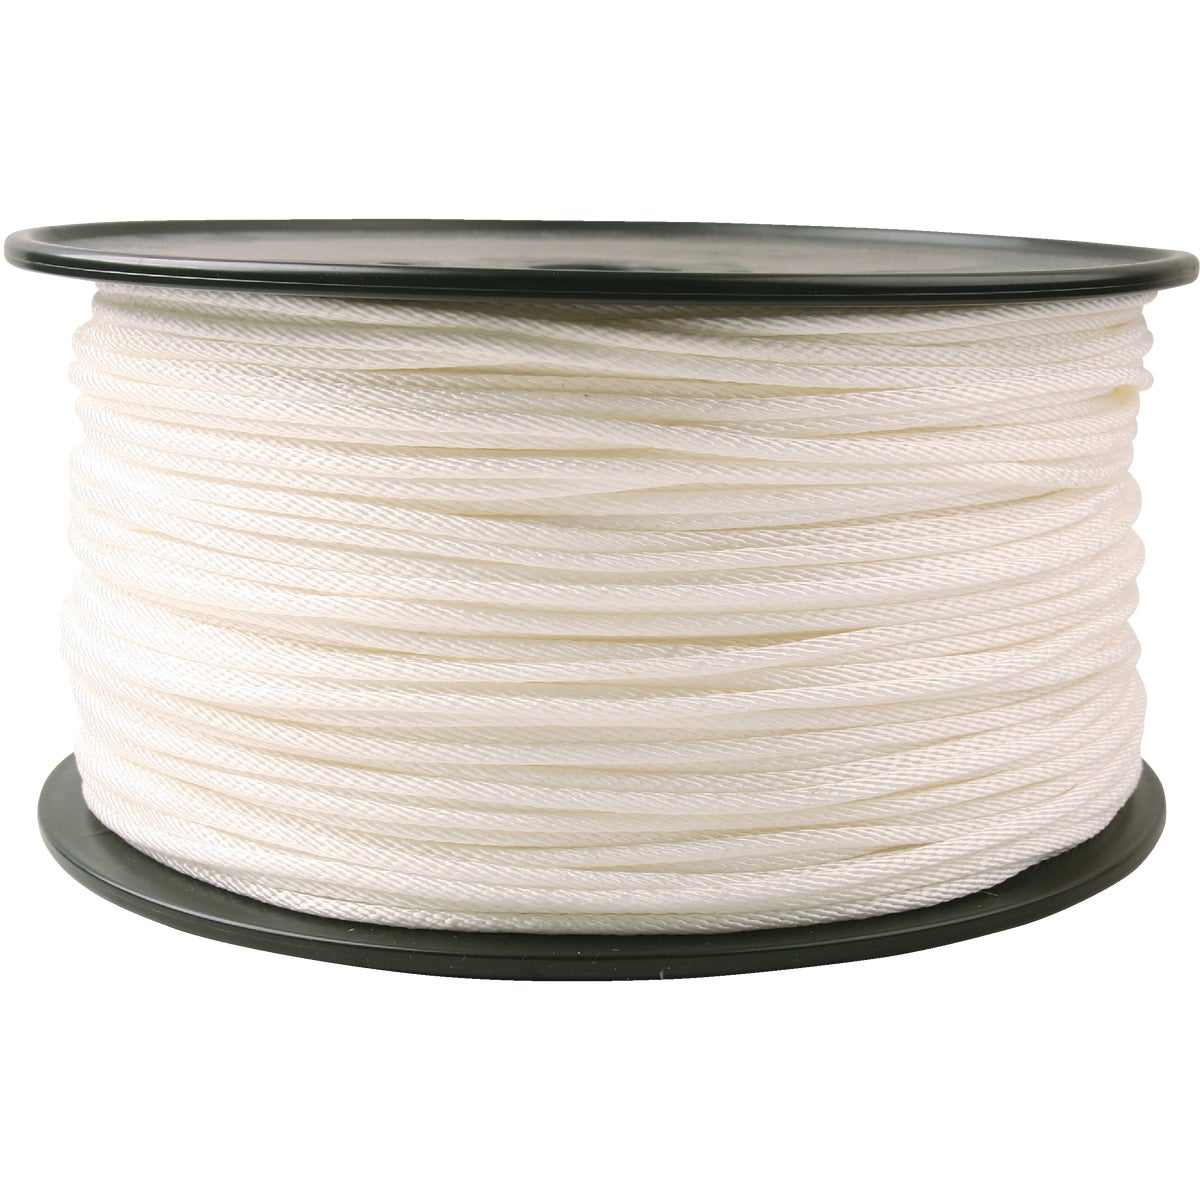 5/32X200'NYL STARTR ROPE - 768388 by Do it Best